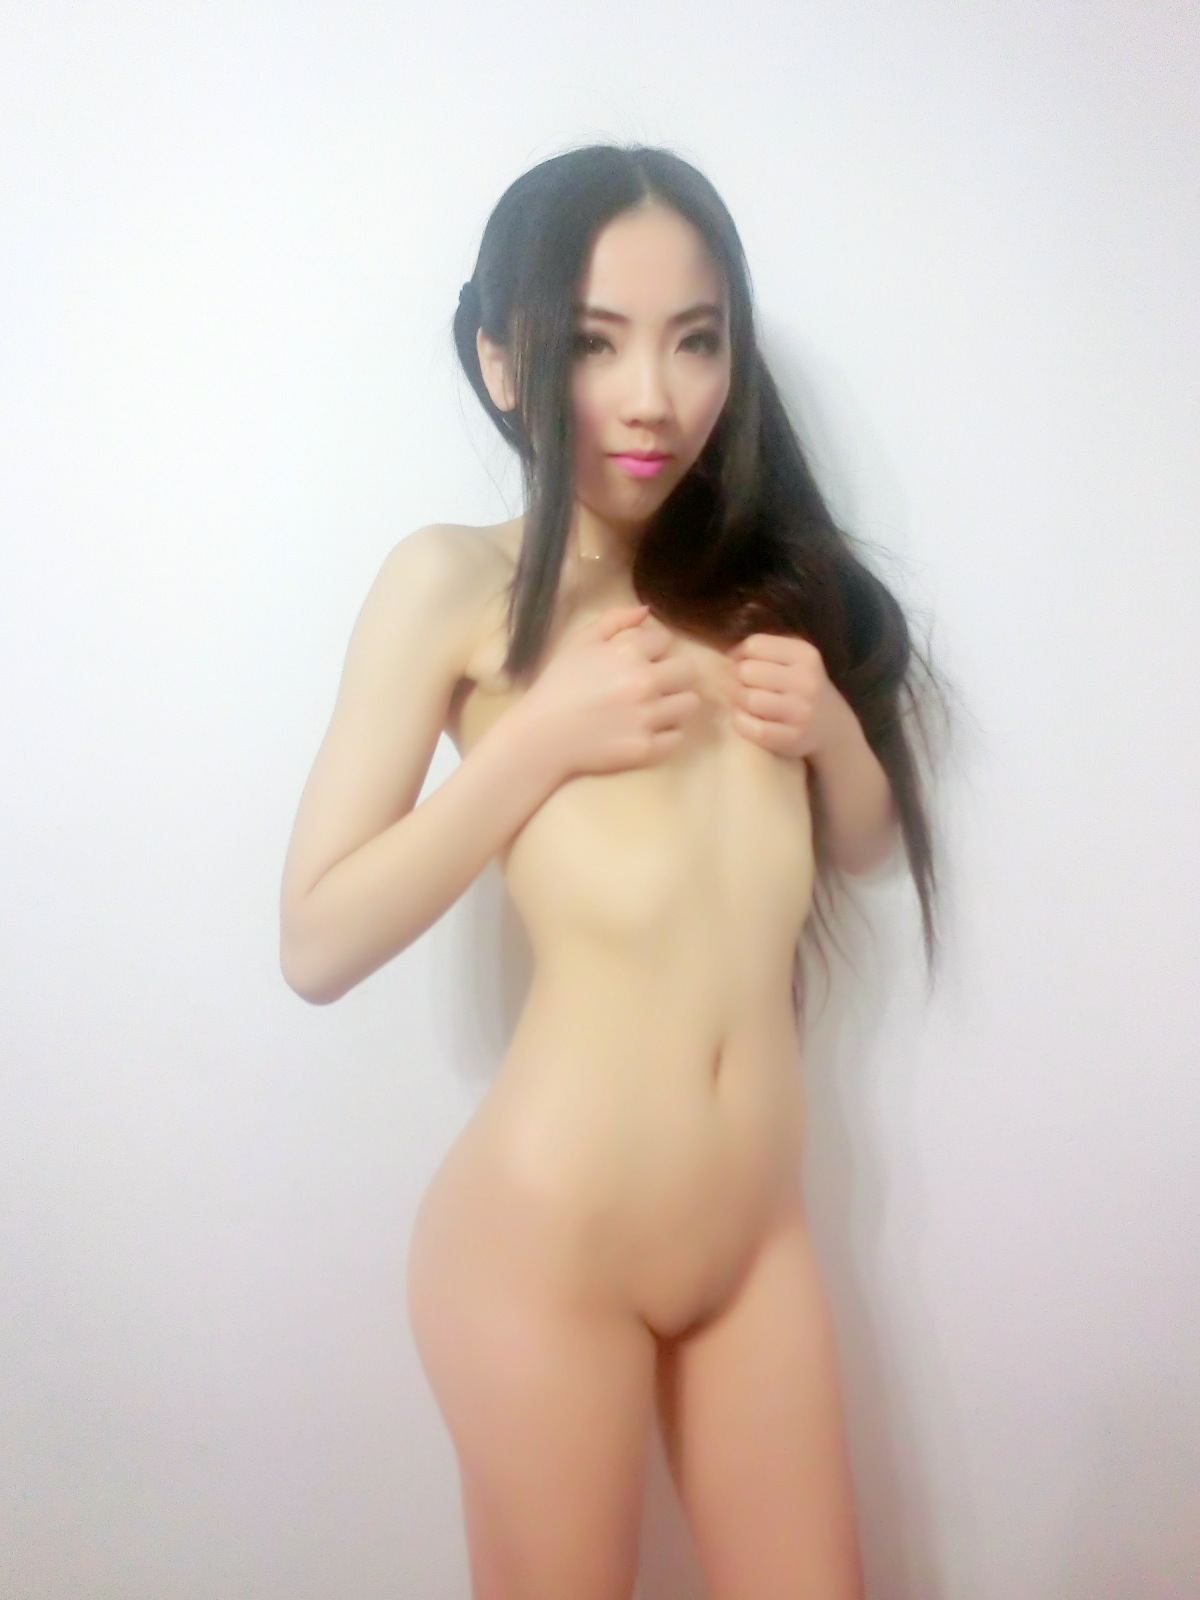 tiny chested japanese nude girls